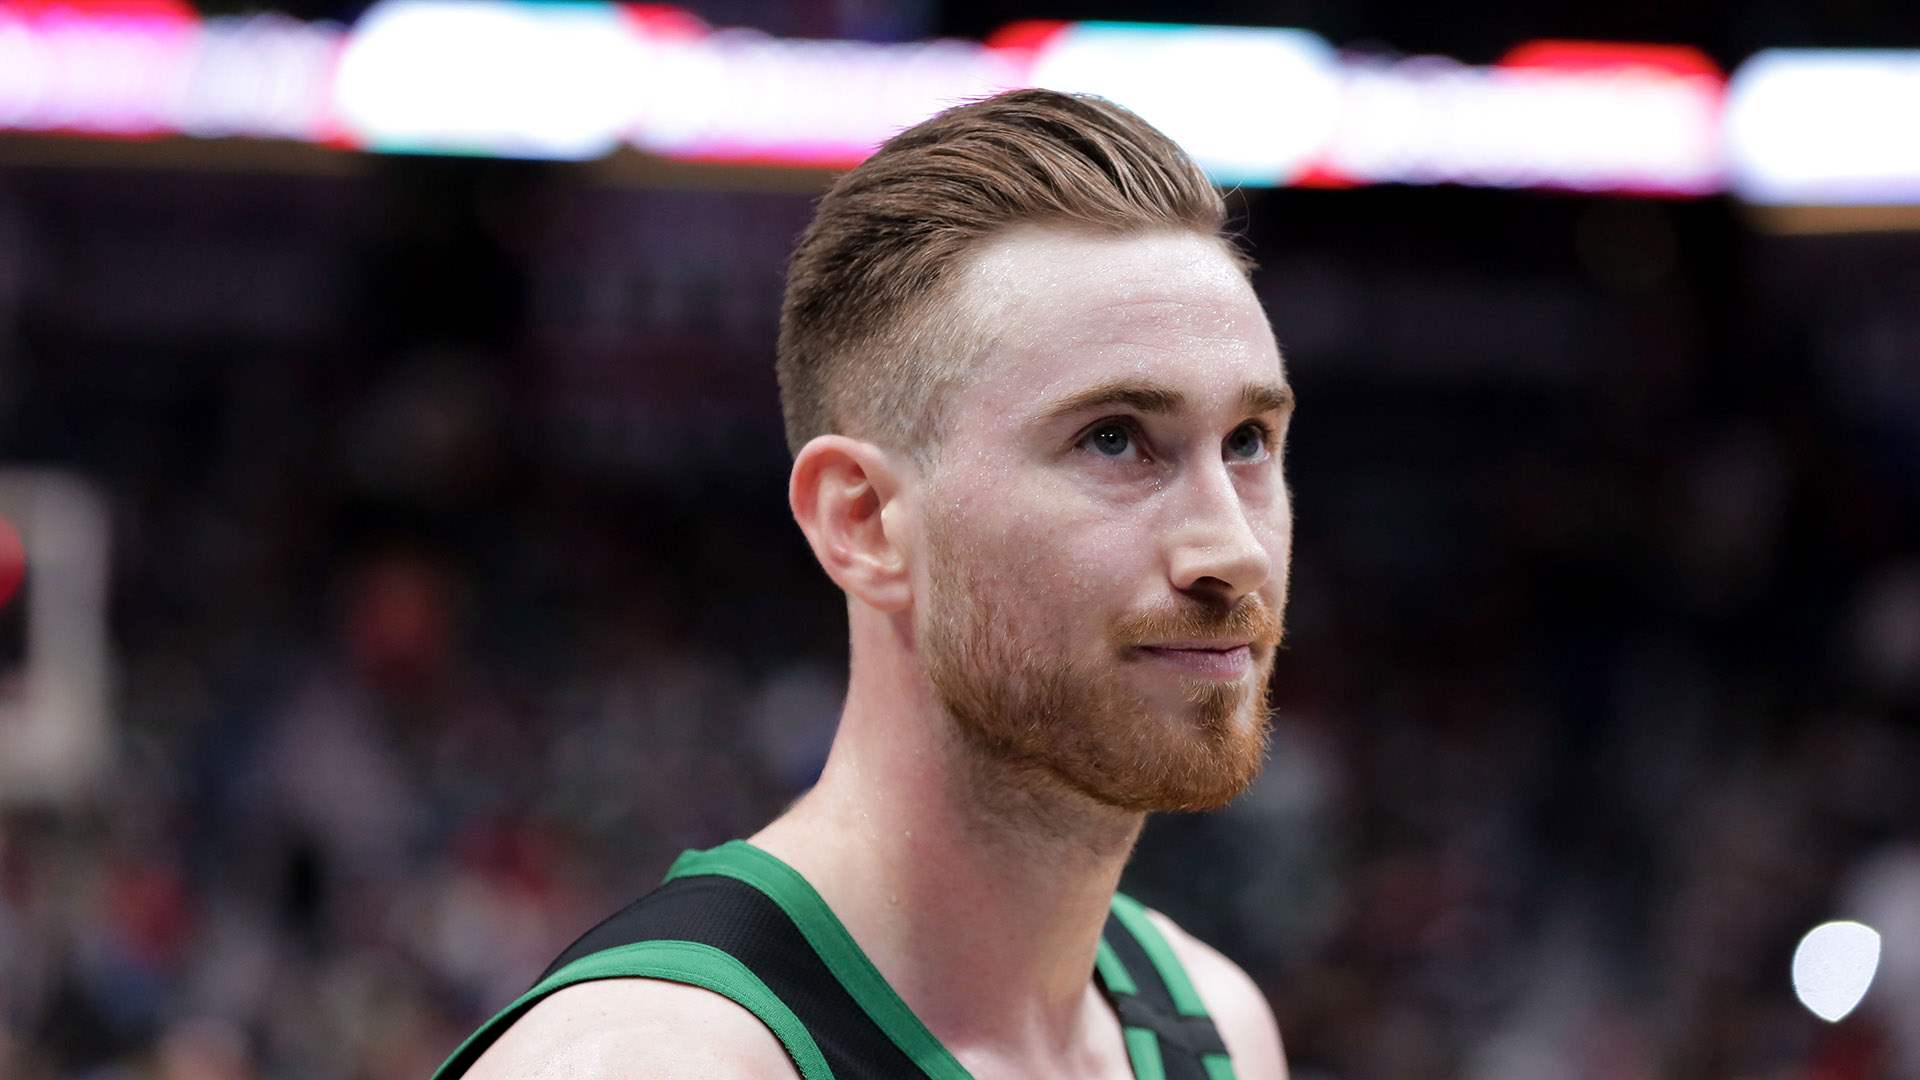 Reports: Hornets to sign Gordon Hayward, waive Nicolas Batum